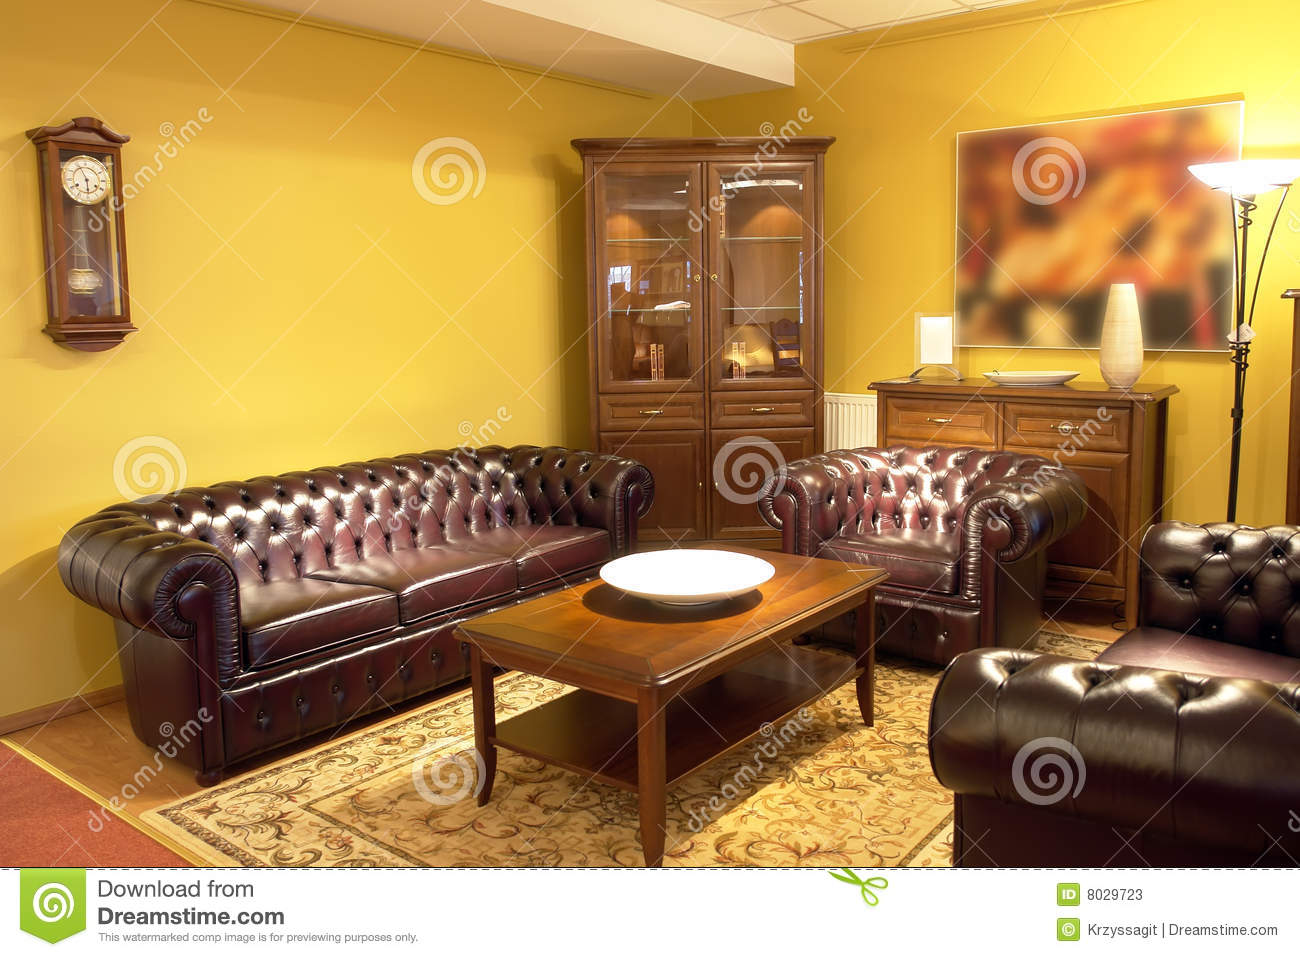 Living Room Living Room Settings formal living room setting stock photos image 8029723 setting